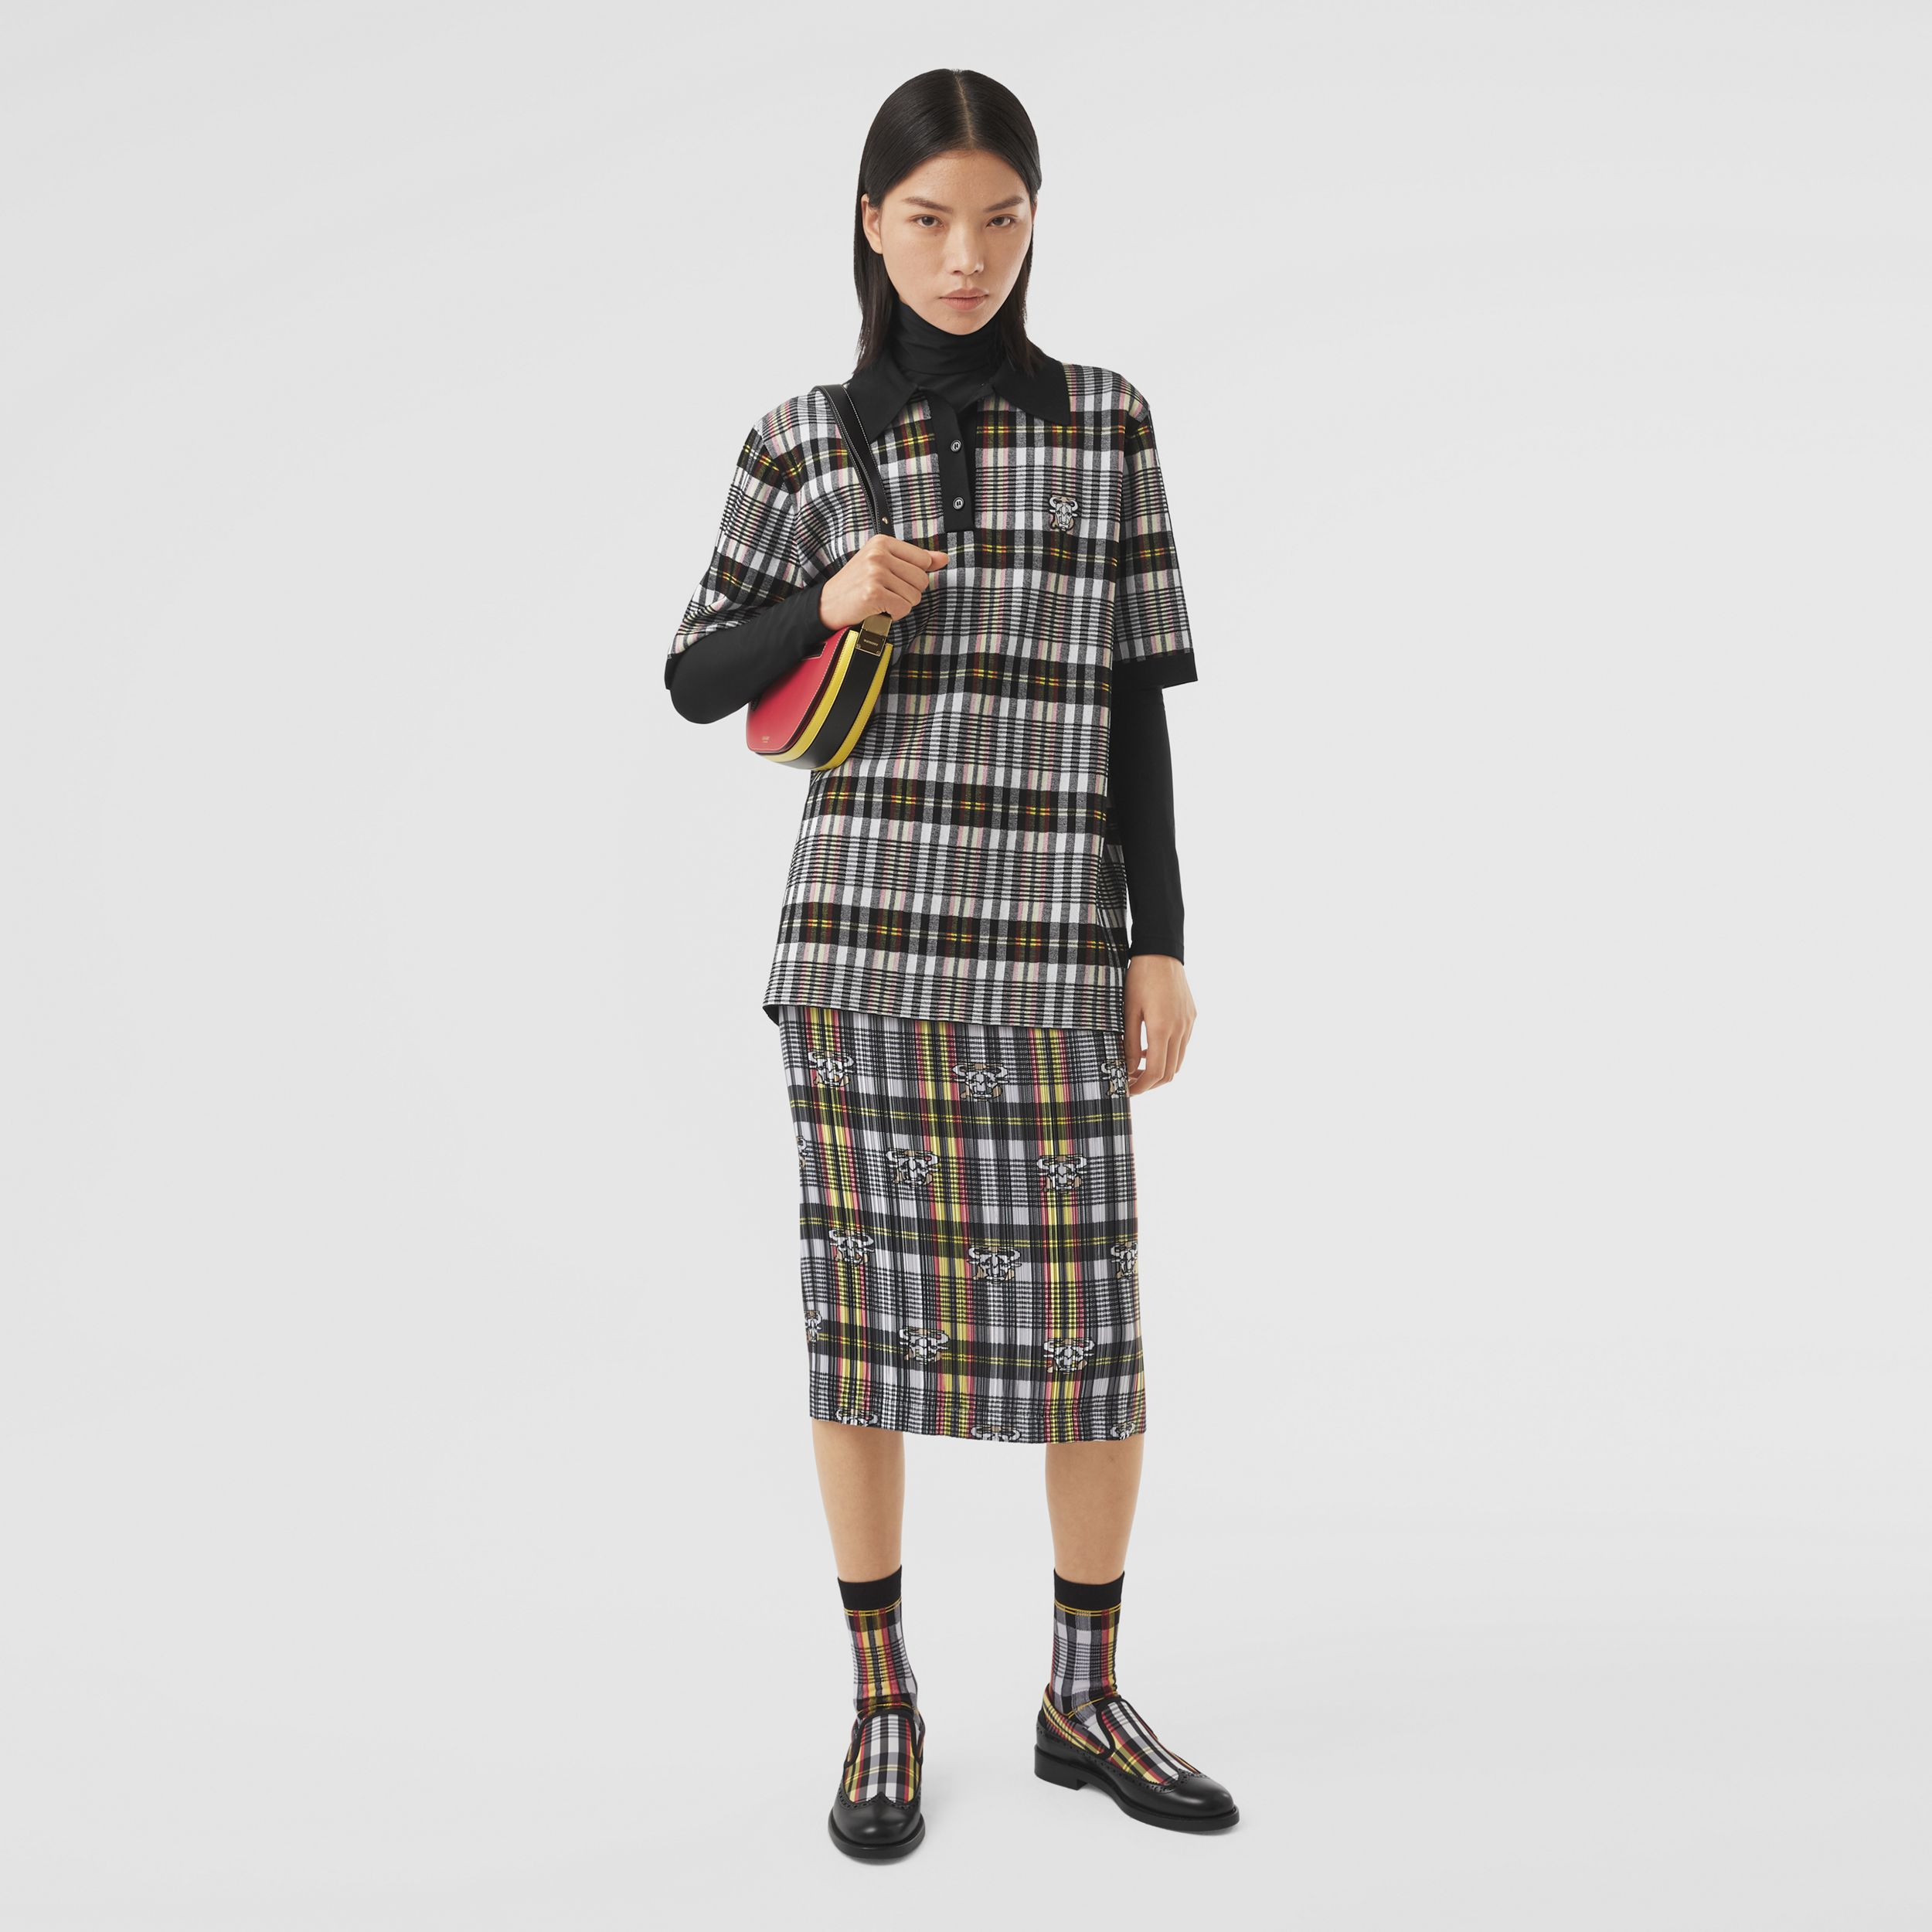 Monogram Motif Check Oversized Polo Shirt in Marigold Yellow - Women | Burberry - 1